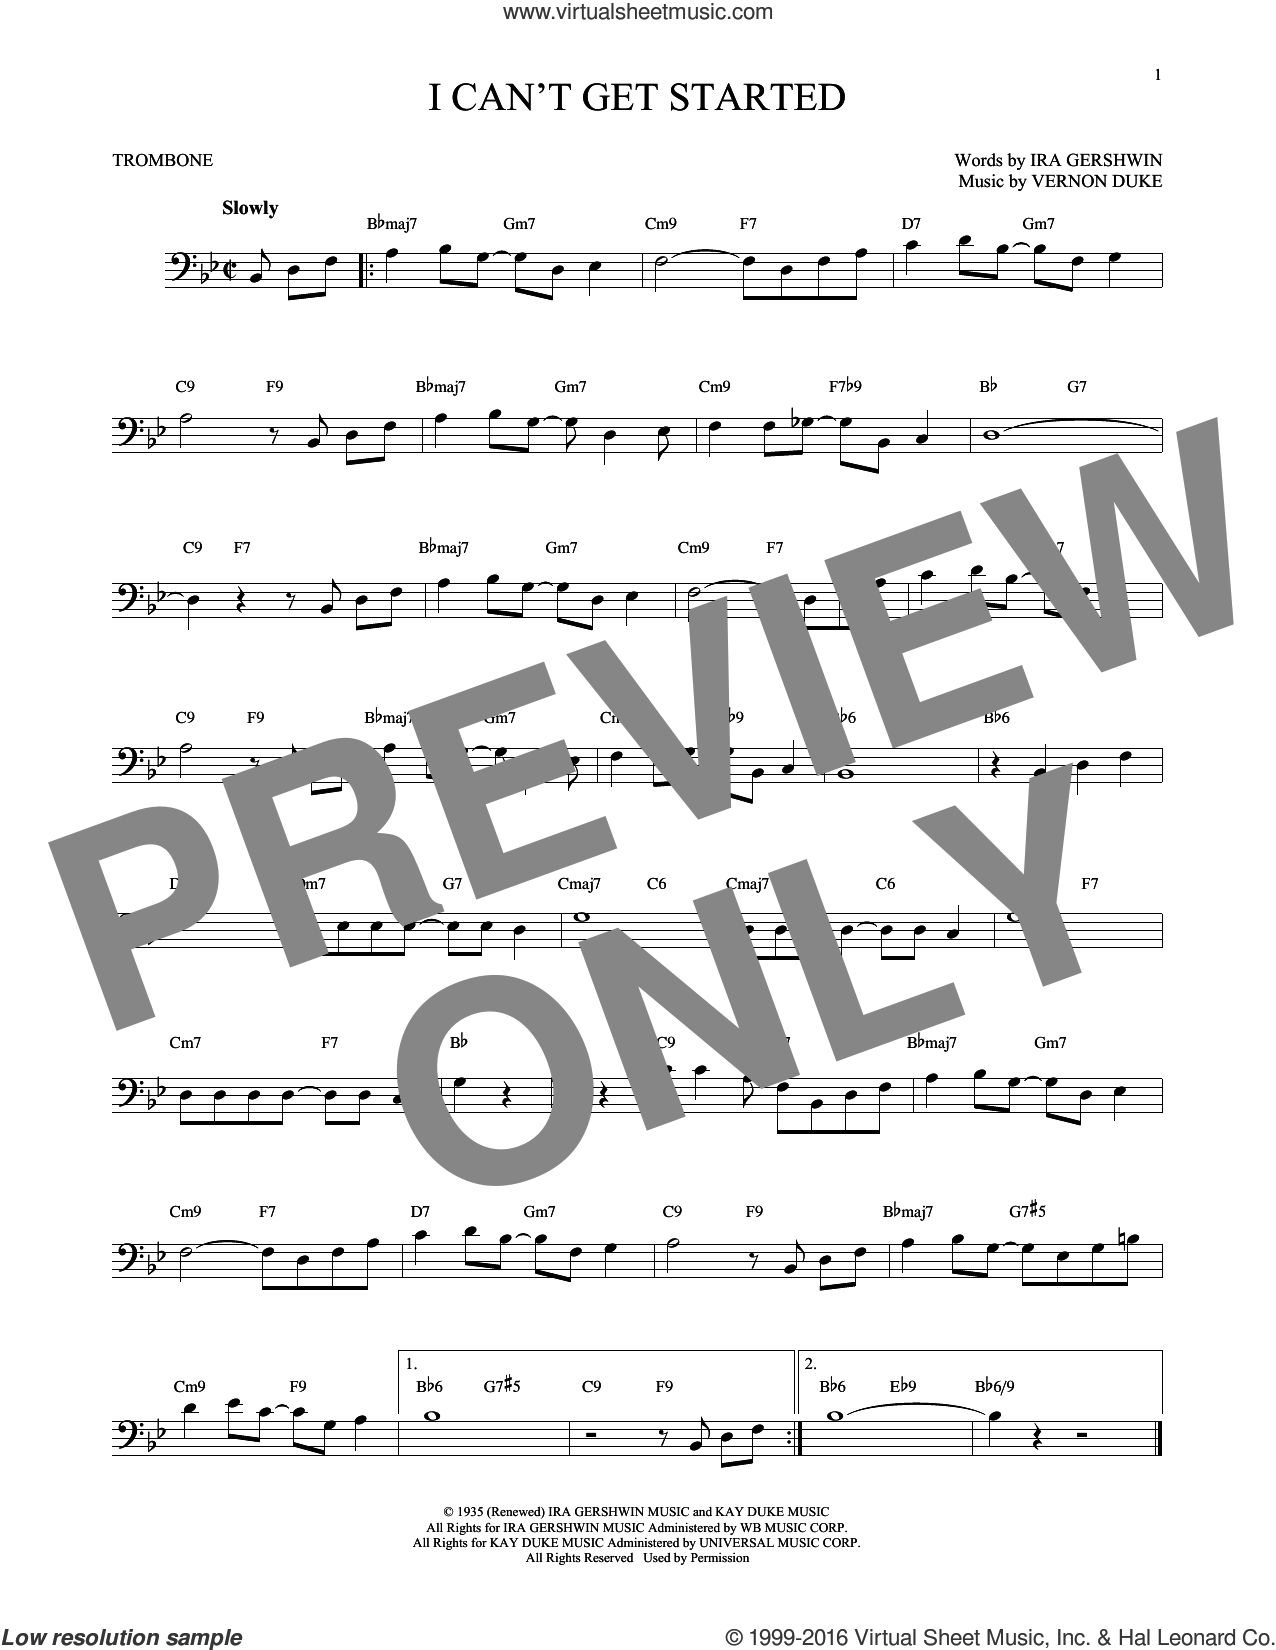 I Can't Get Started sheet music for trombone solo by Vernon Duke and Ira Gershwin. Score Image Preview.